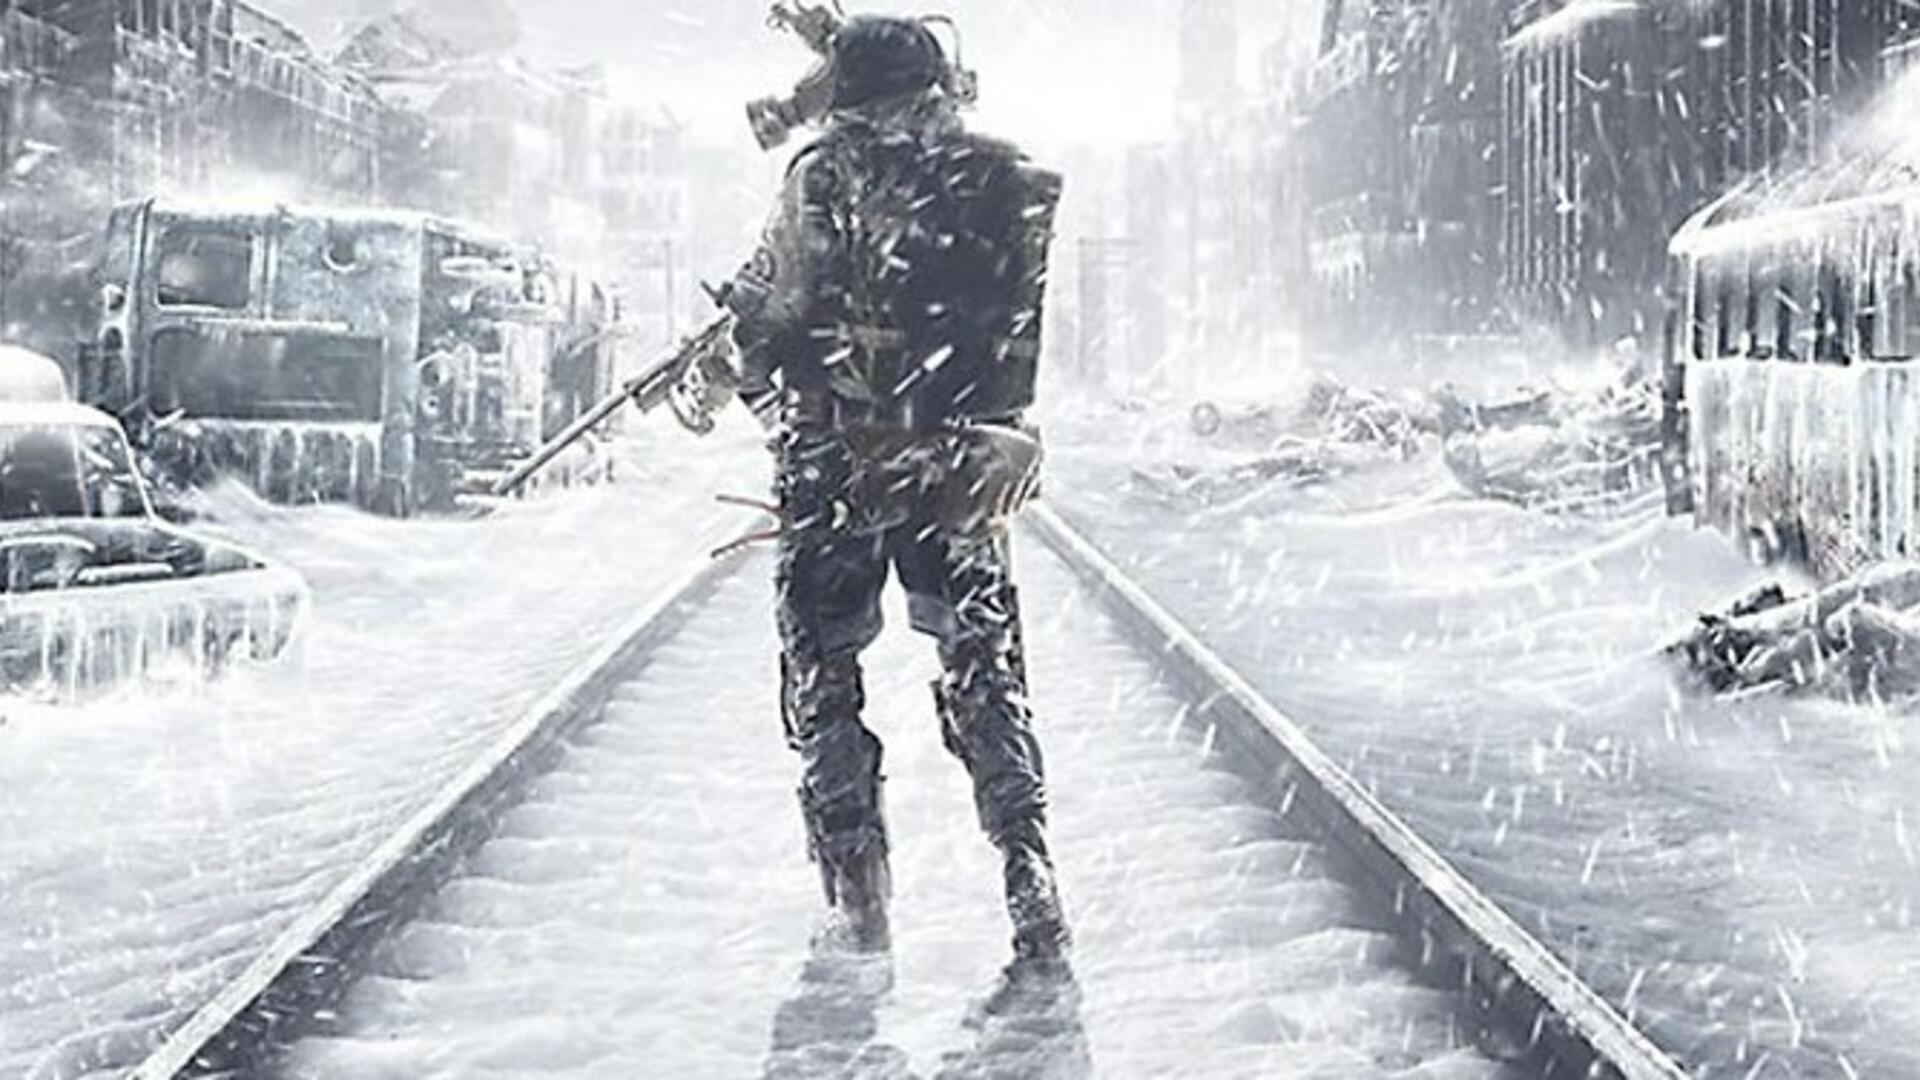 Metro Exodus Release Date, Gameplay, Preview, 4K Graphics - Everything we Know